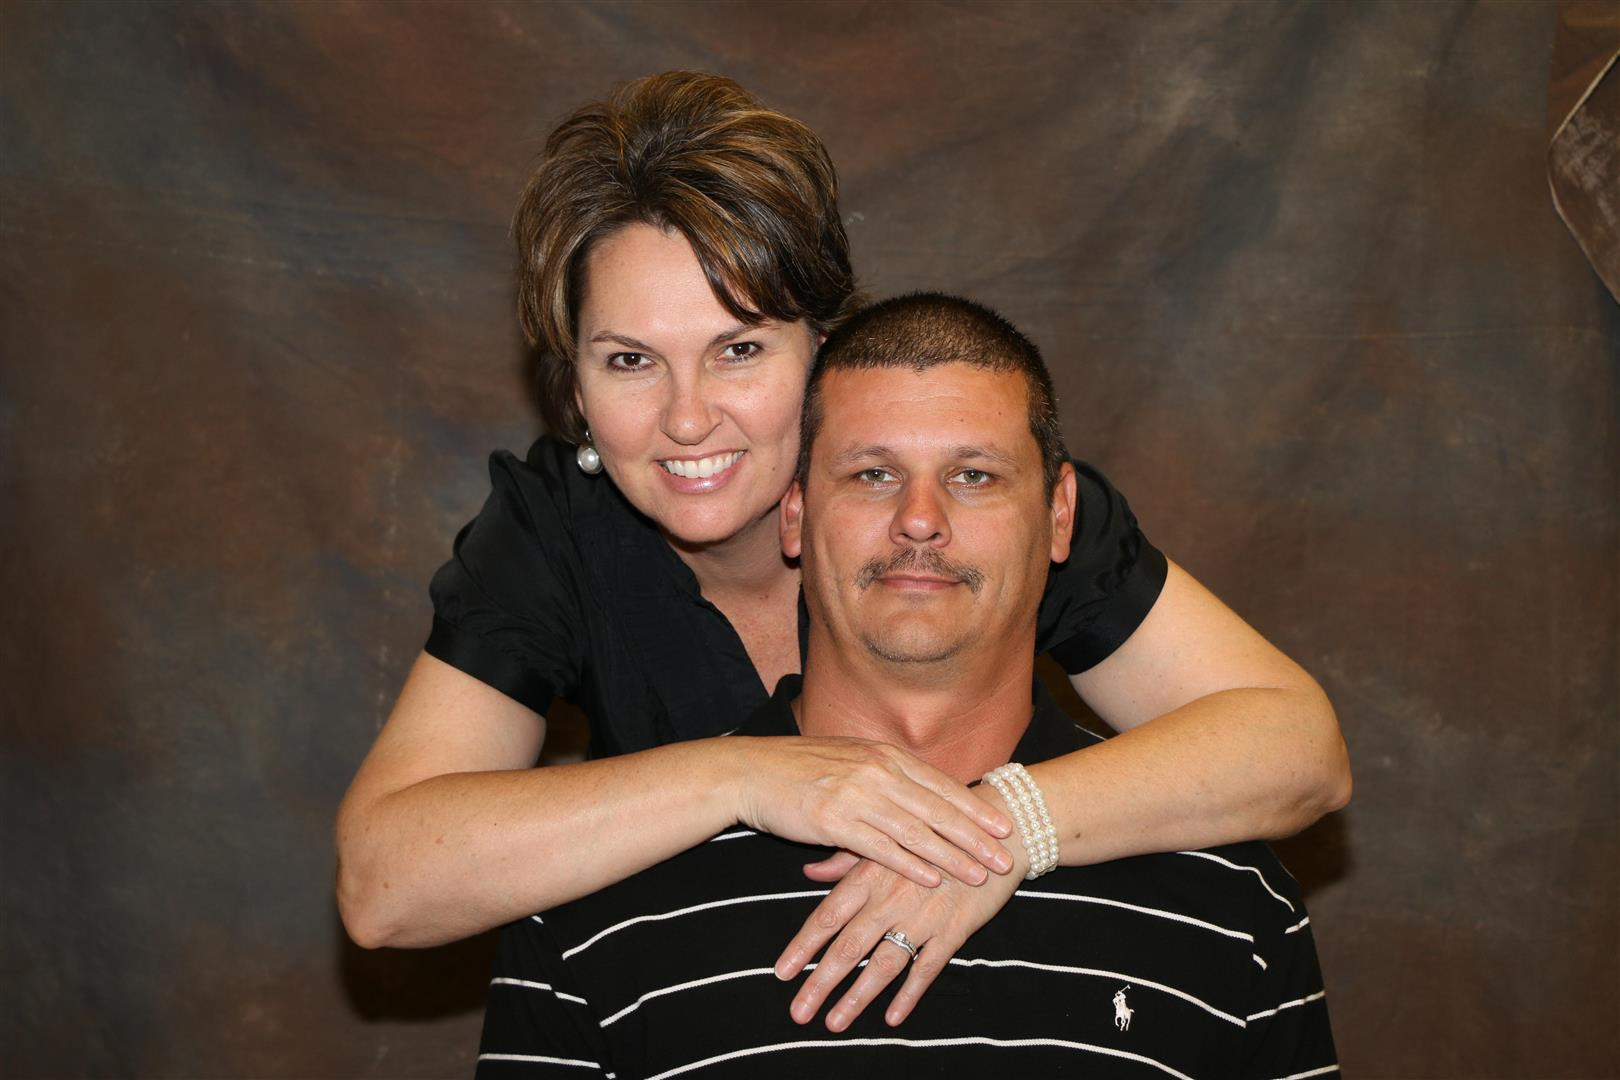 Stacy and Phillip Cole